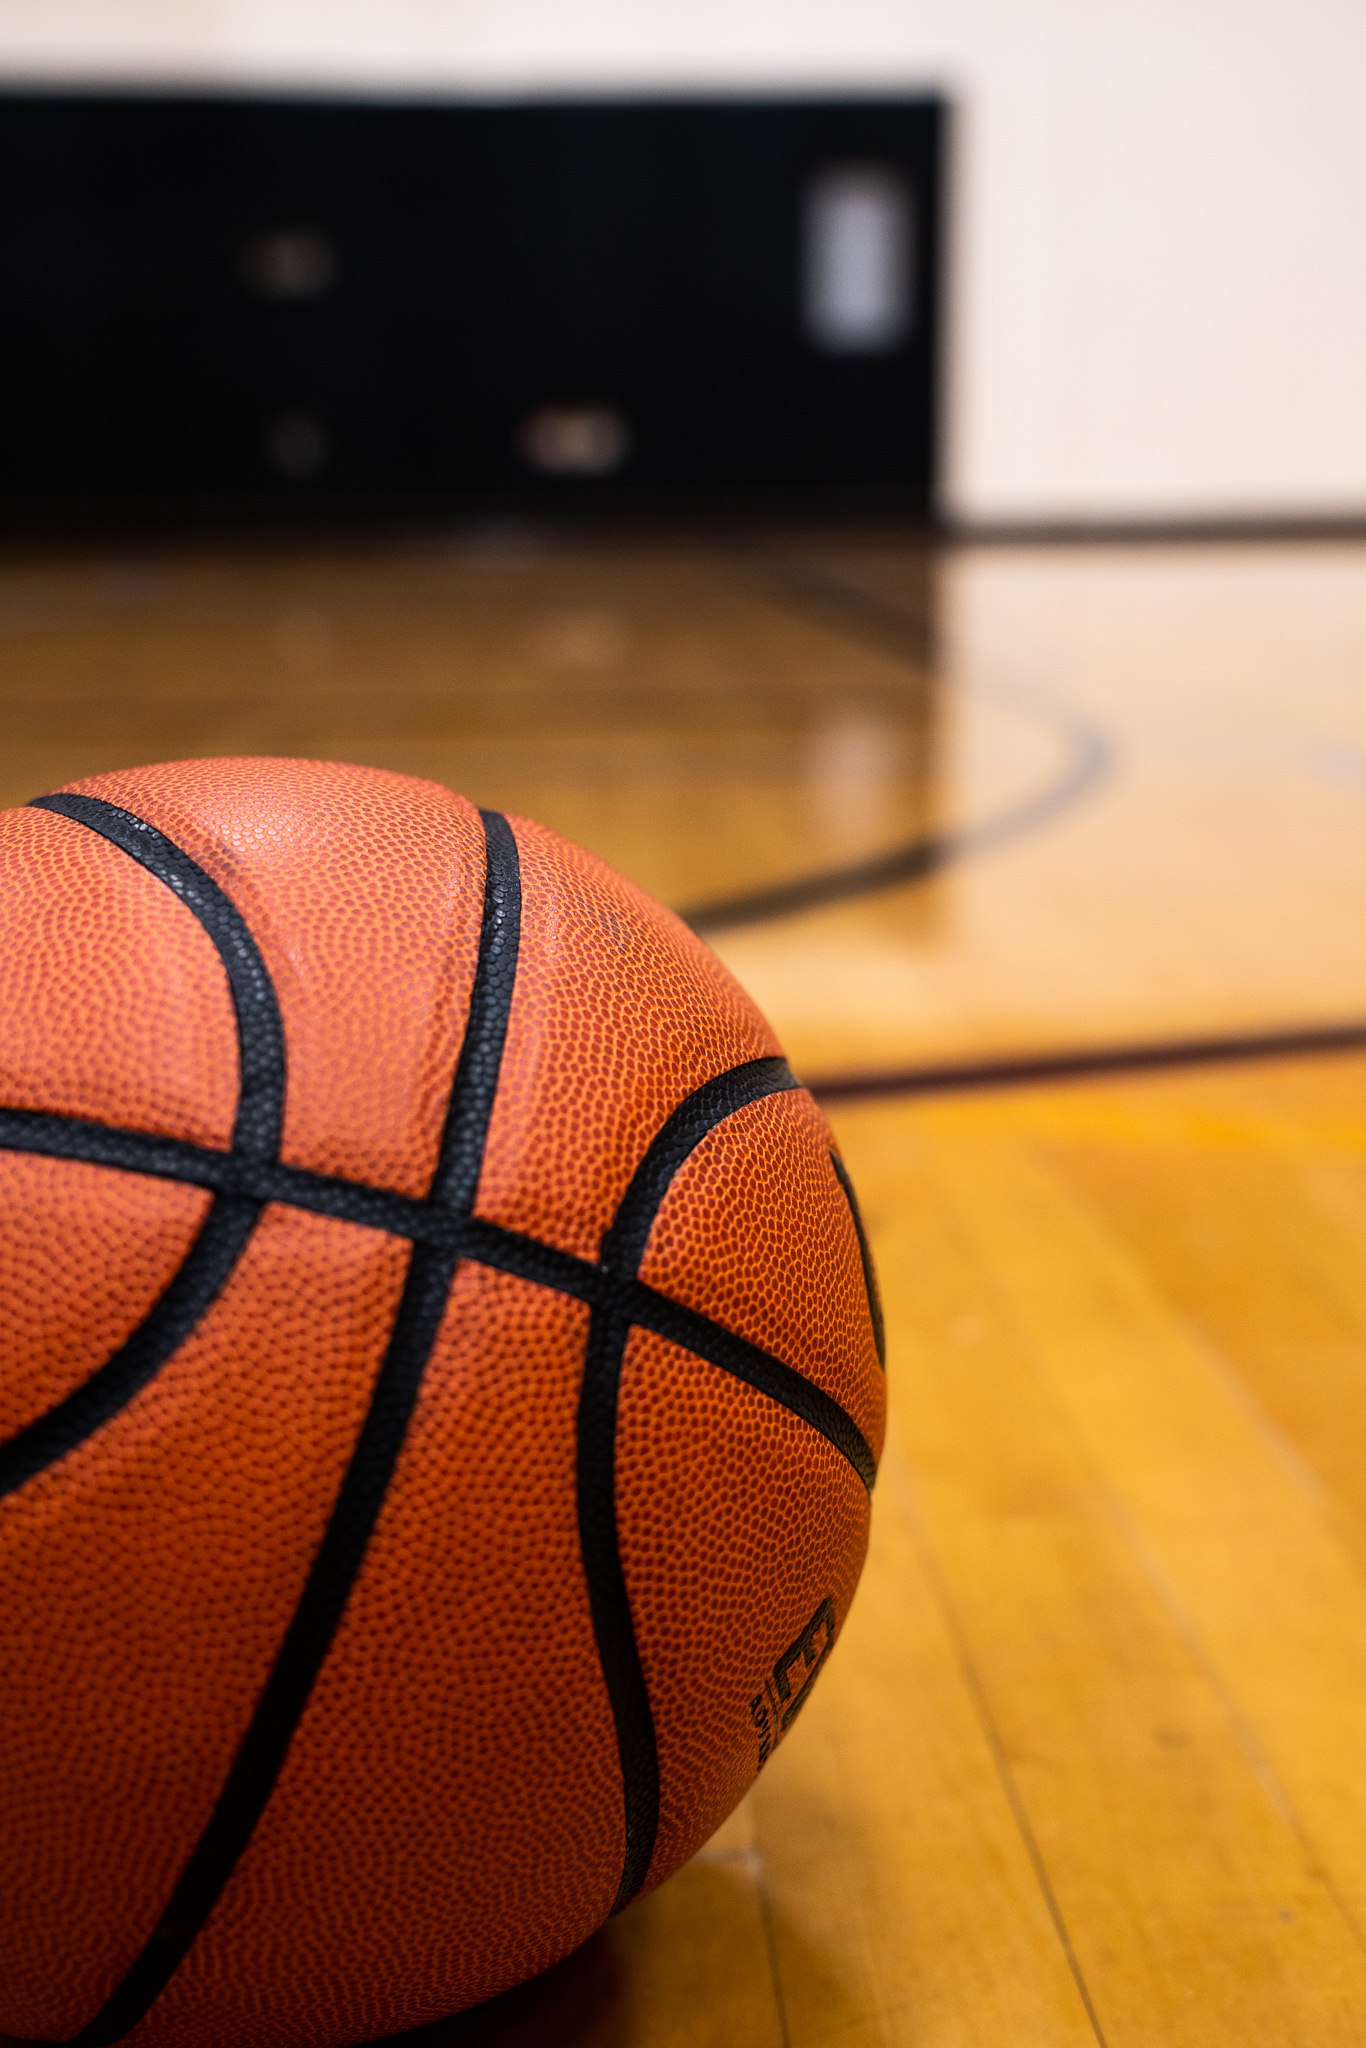 Basketball & Hoop Background 2.jpg